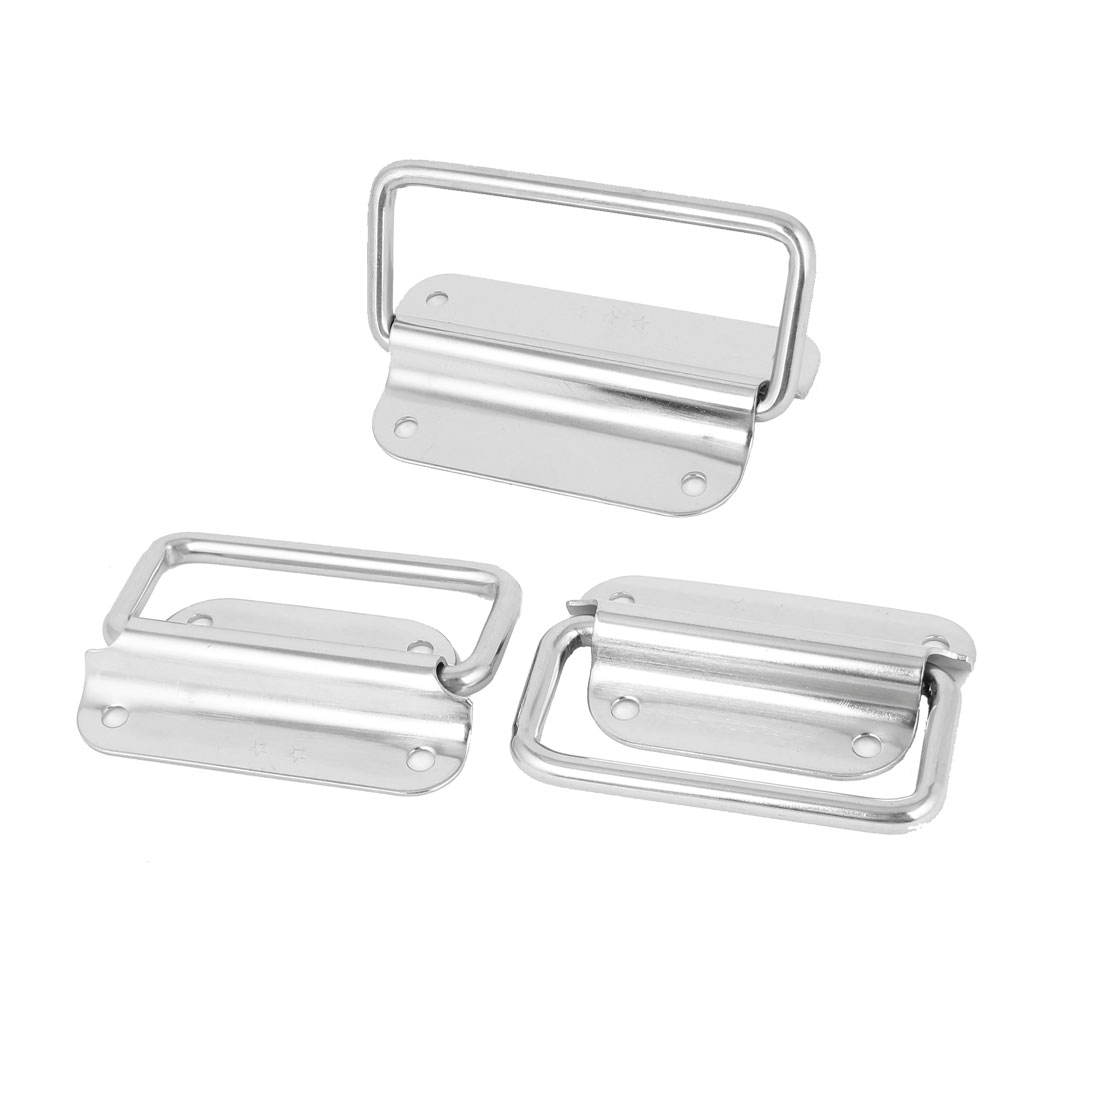 "Toolbox Stainless Steel 90-Degree Puller Chest Handle Silver Tone 4"" Length 3pcs"